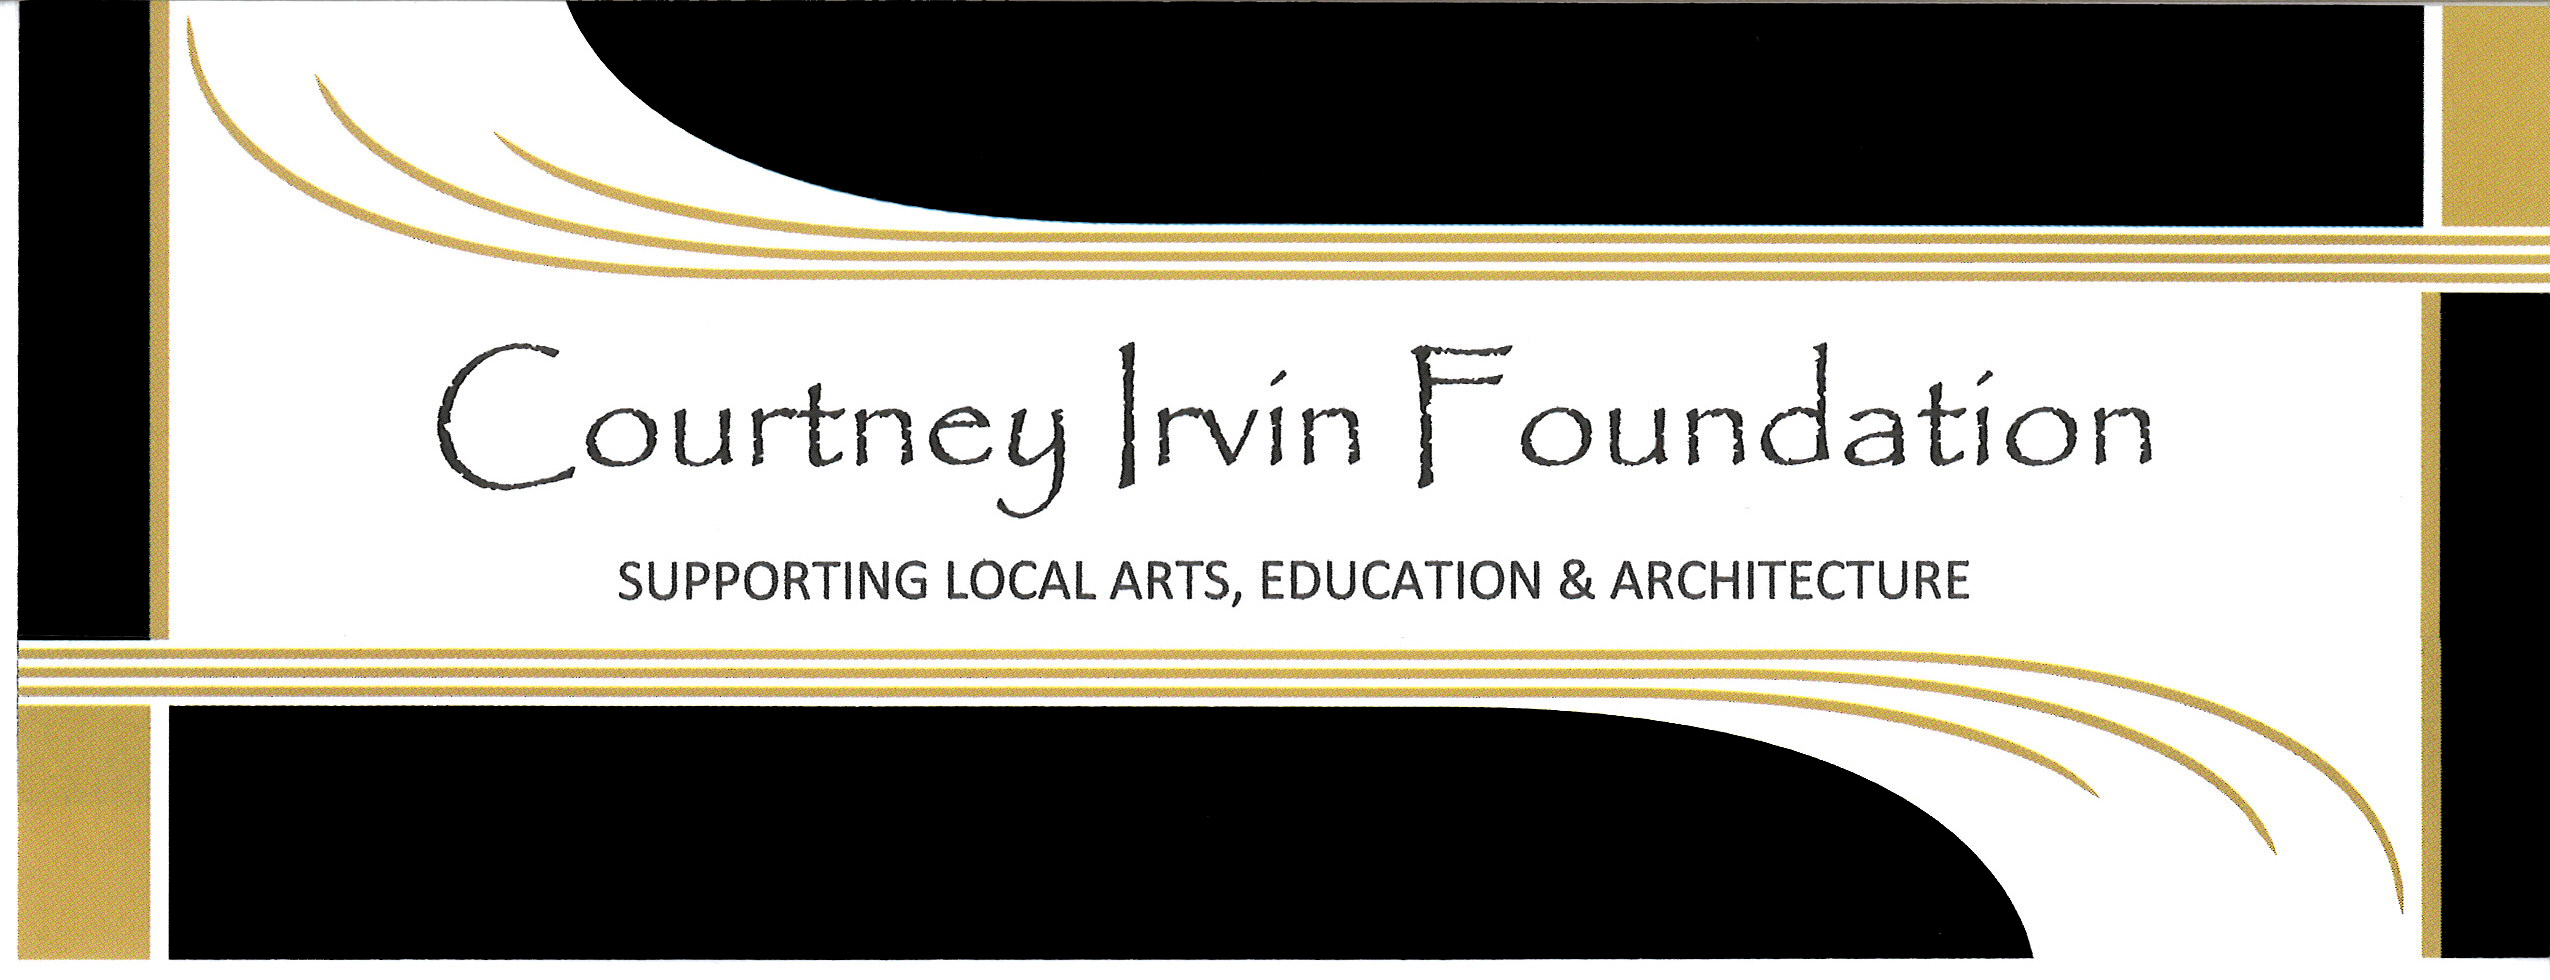 Courtney Irvin Foundation